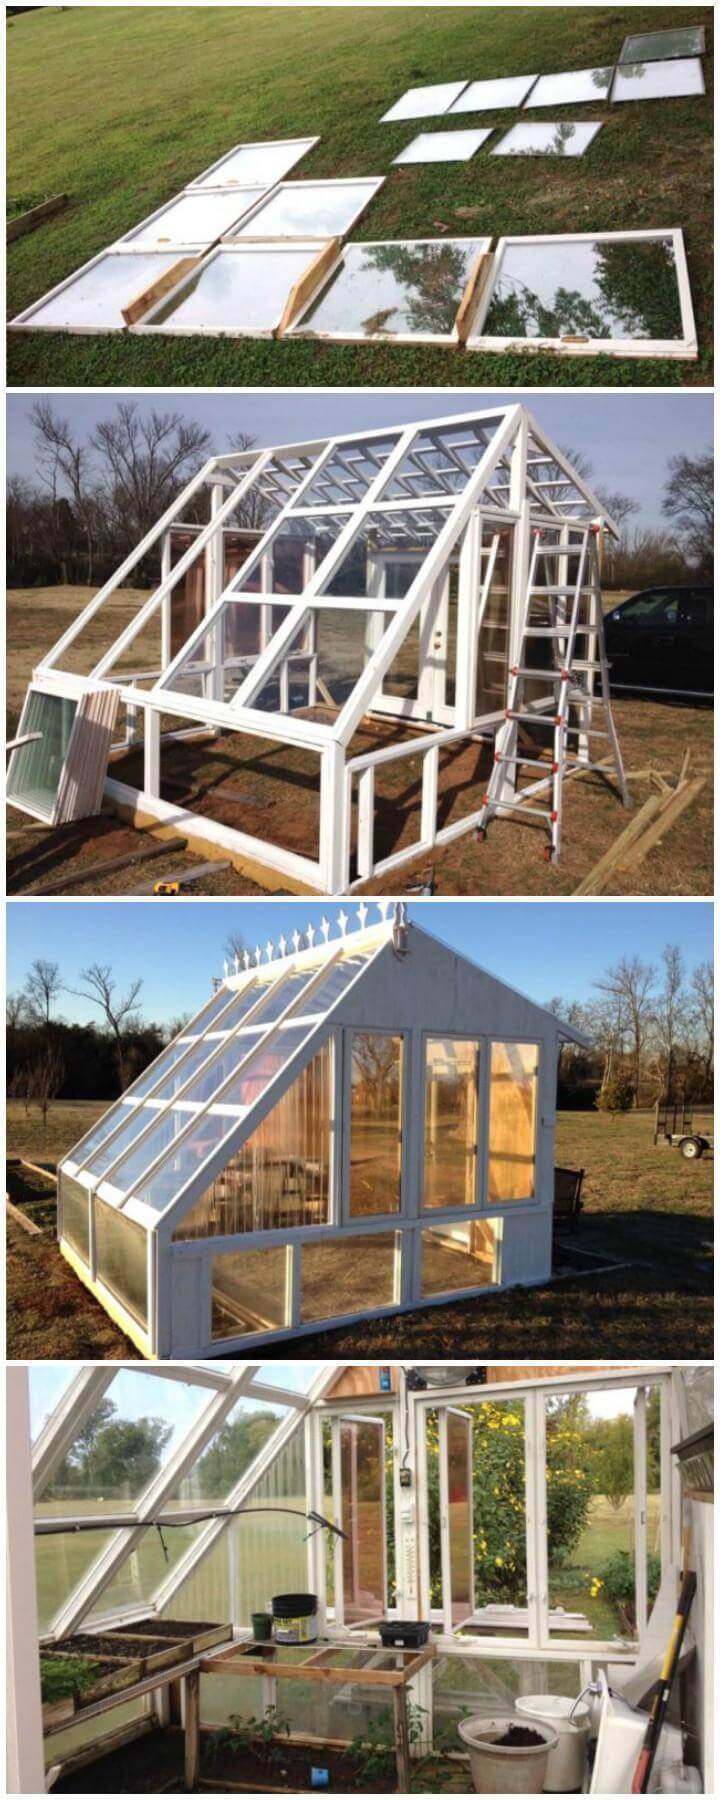 DIY Greenhouse Made of Old Windows